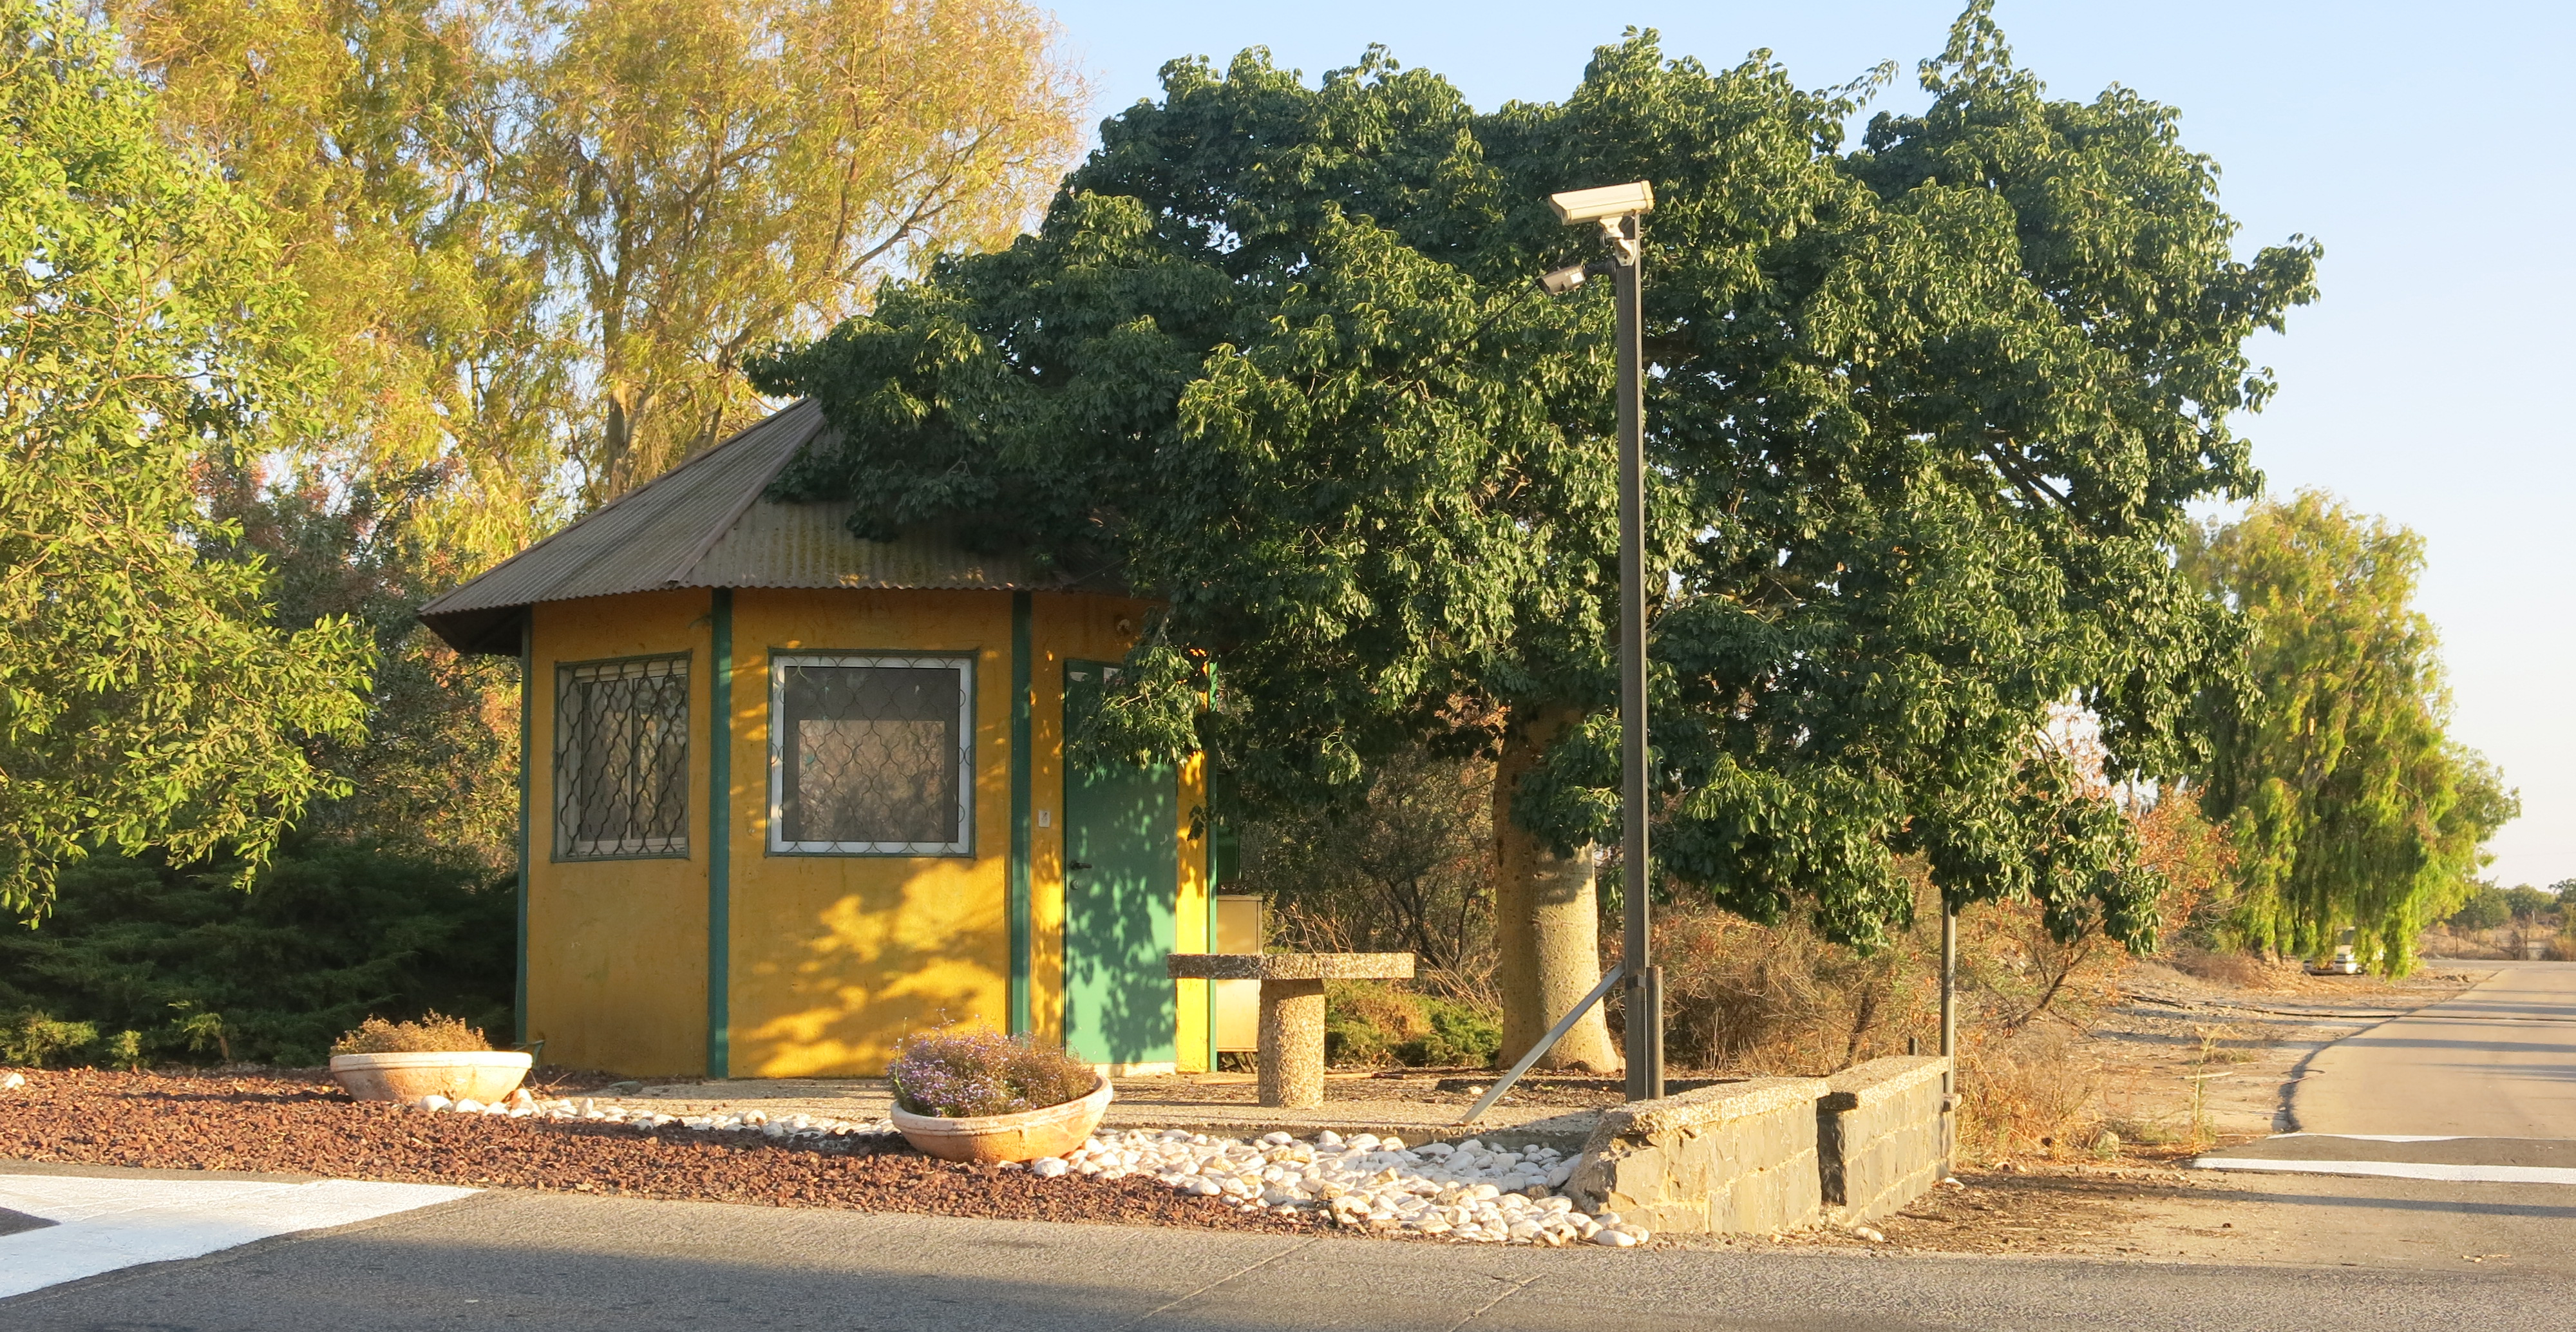 The guardhouse at the gate